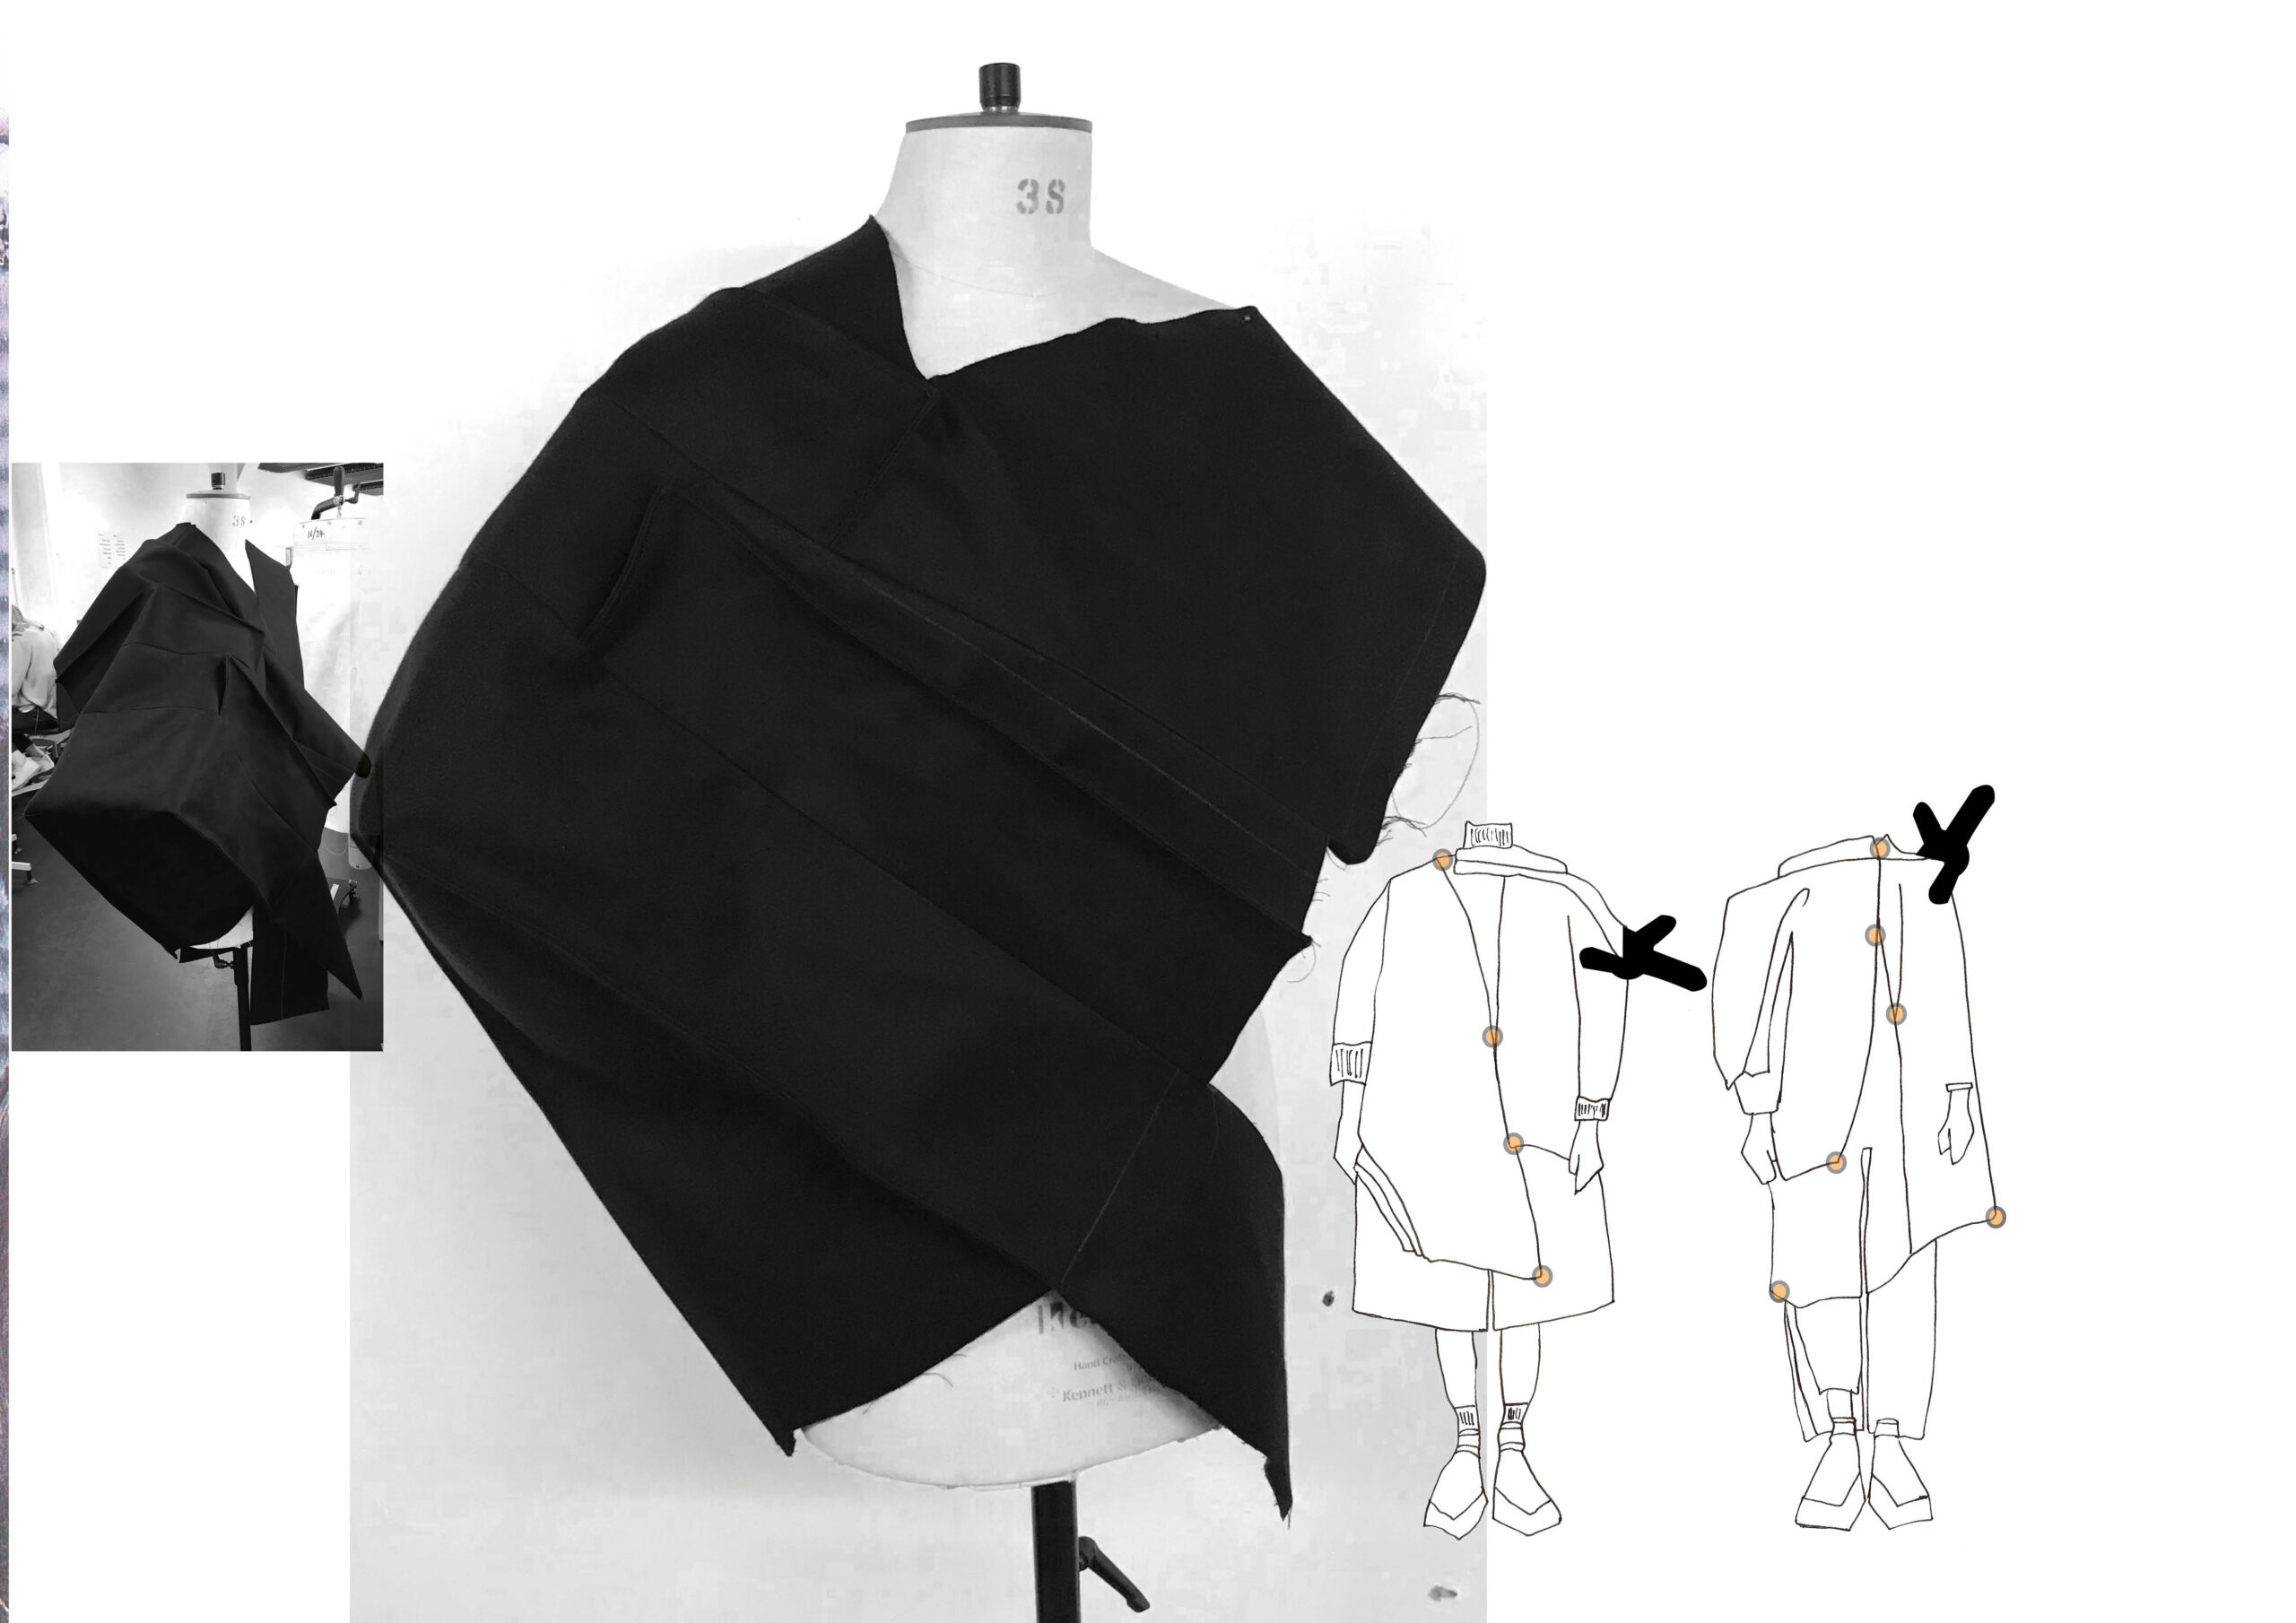 Davina Amajor on multi-functional garments and overlooked materials